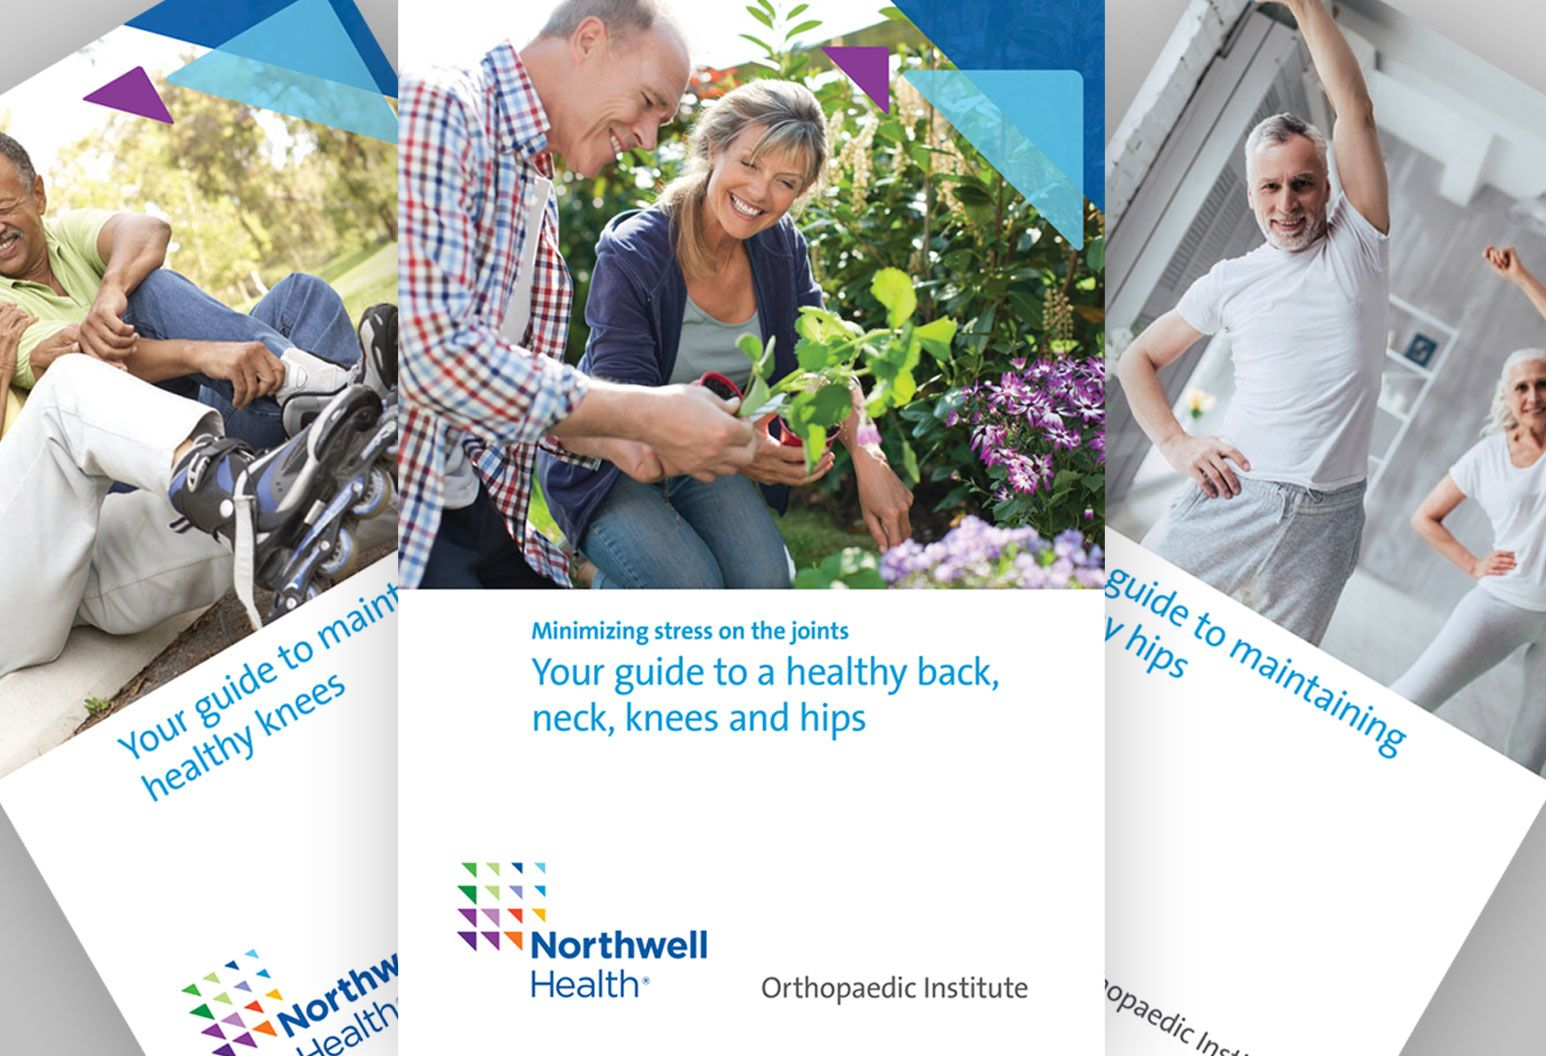 Three Northwell Health ebooks are displayed. One is a guide to a healthy back, neck, knees and hips with a photo of a couple gardening together and two others are displayed behind it.